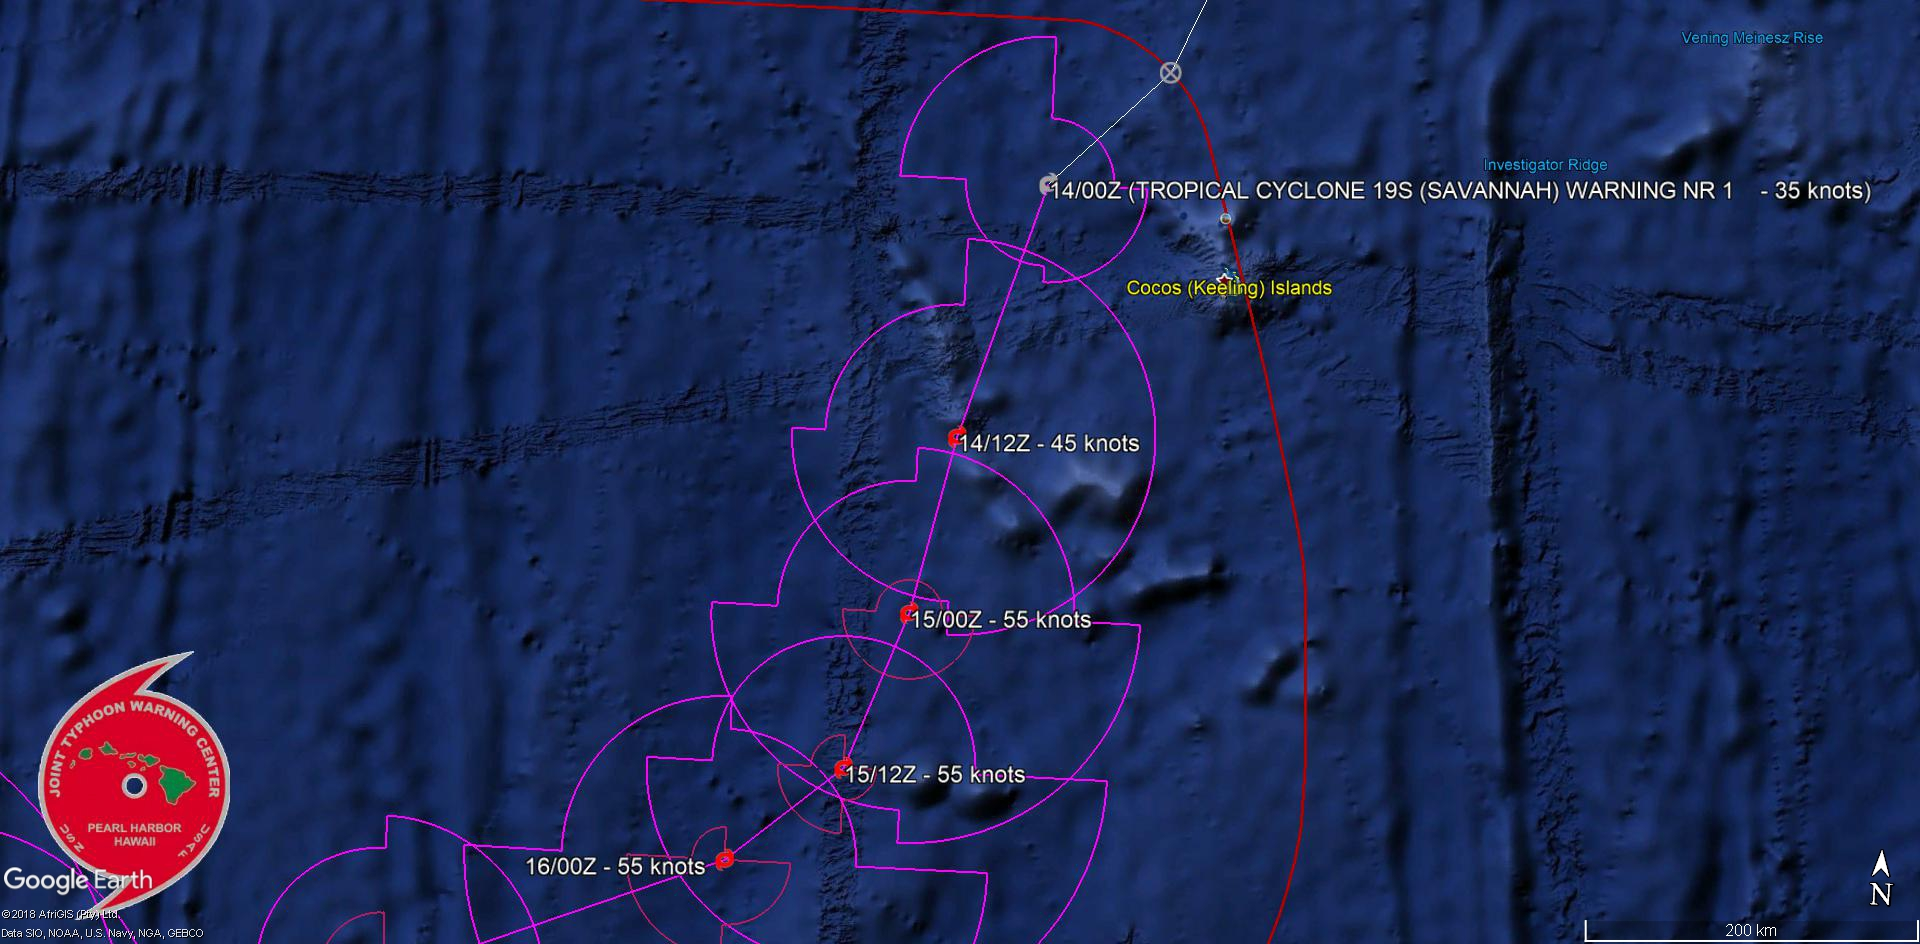 SAVANNAH(19S) tracking approx 110km to the Cocos islands.